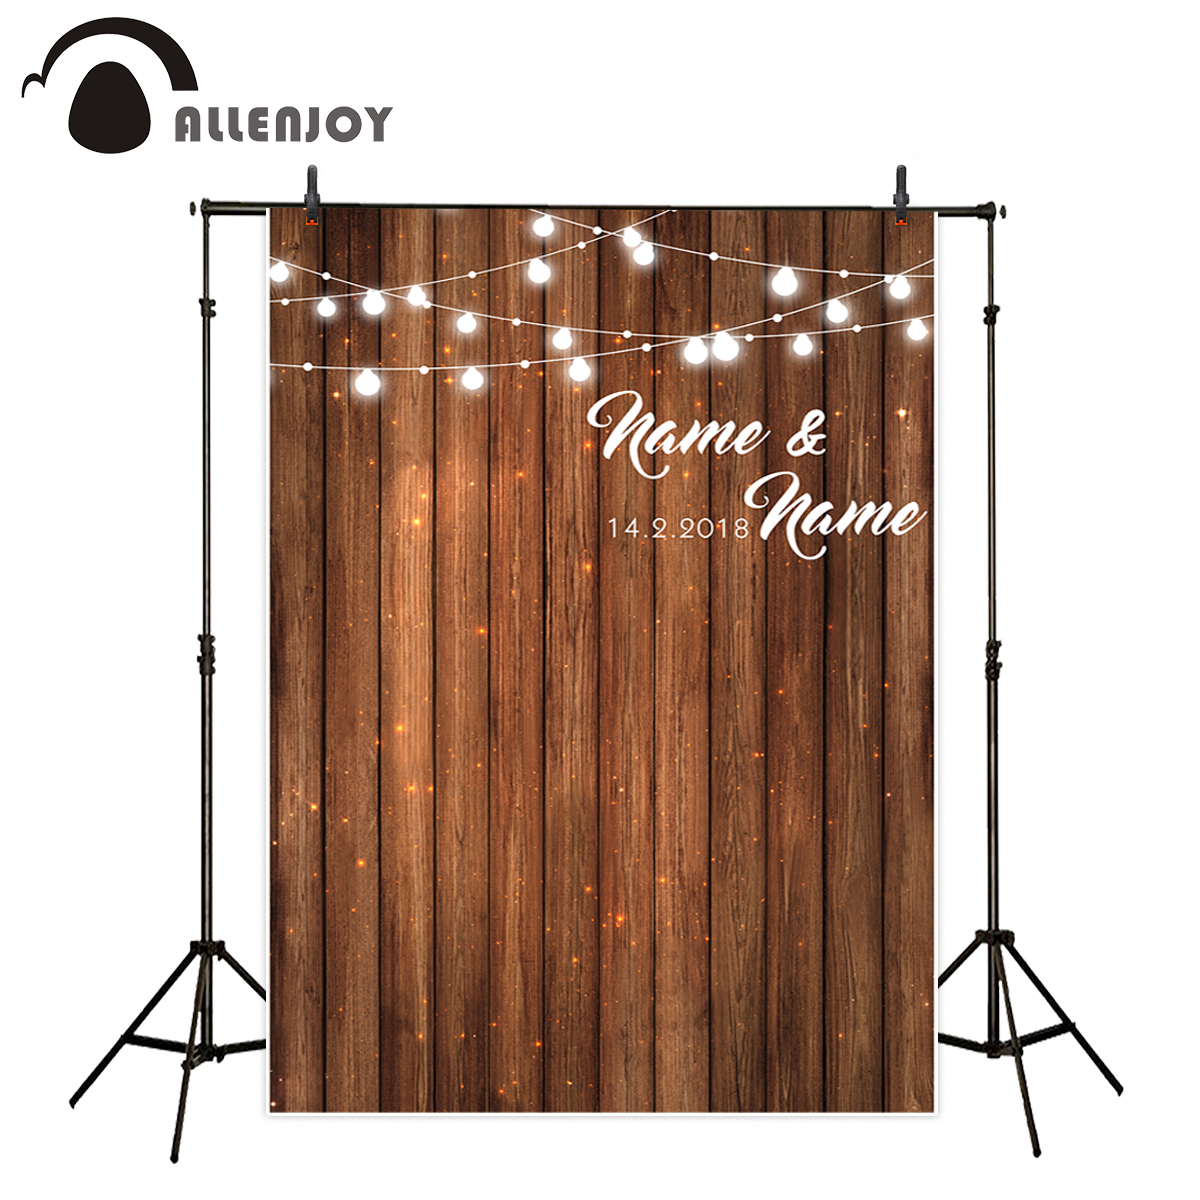 Allenjoy wedding backgrounds for photography studio wood board party customize original design backdrop professional photocall картридж hp inkjet cartridge black 51626a